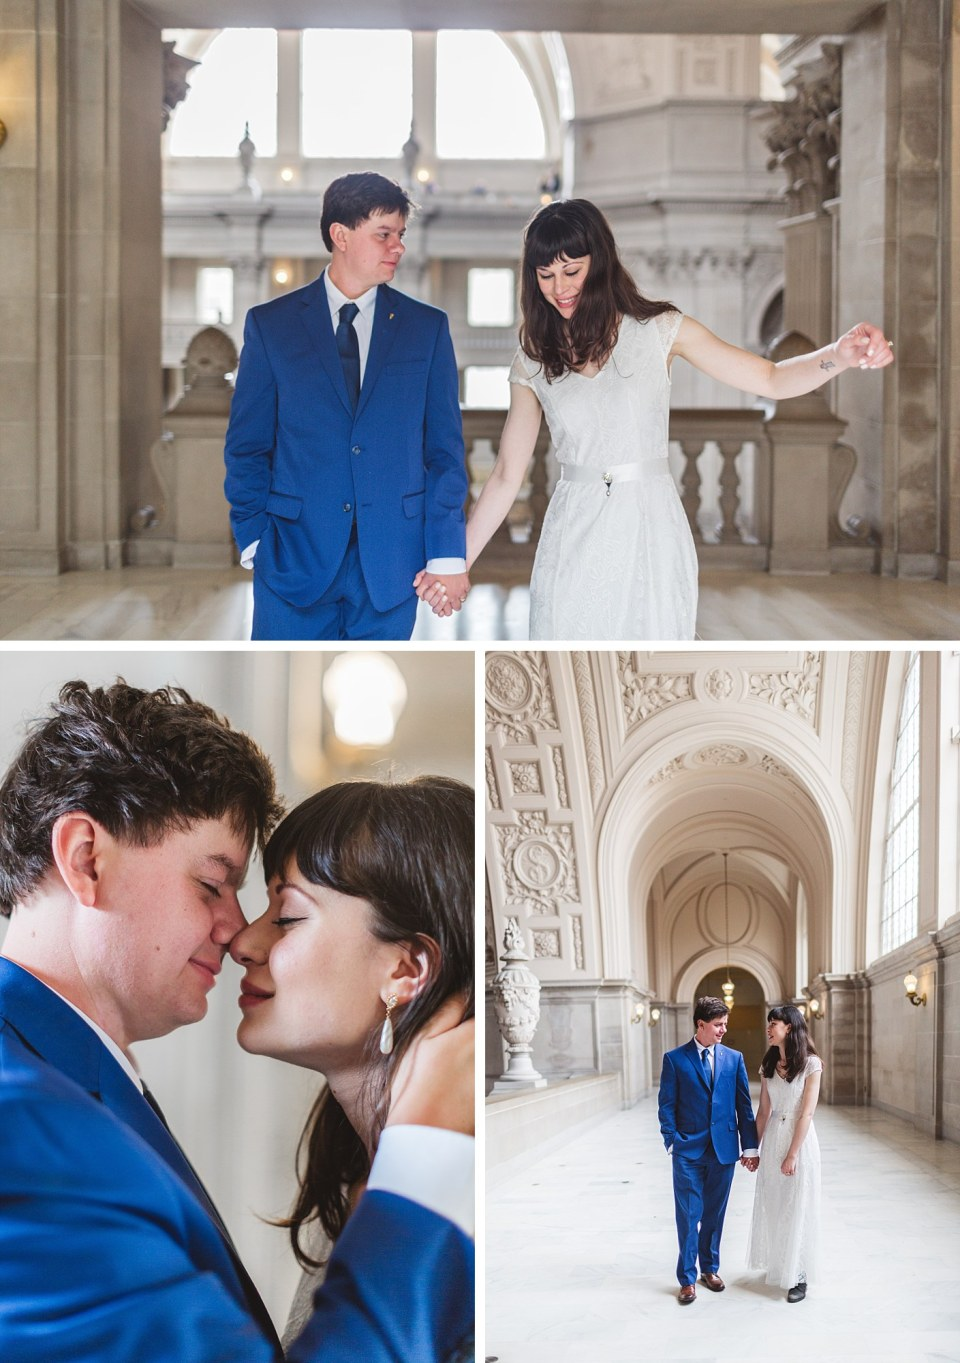 Candid city hall photos showing couple's portraits immediately after ceremony